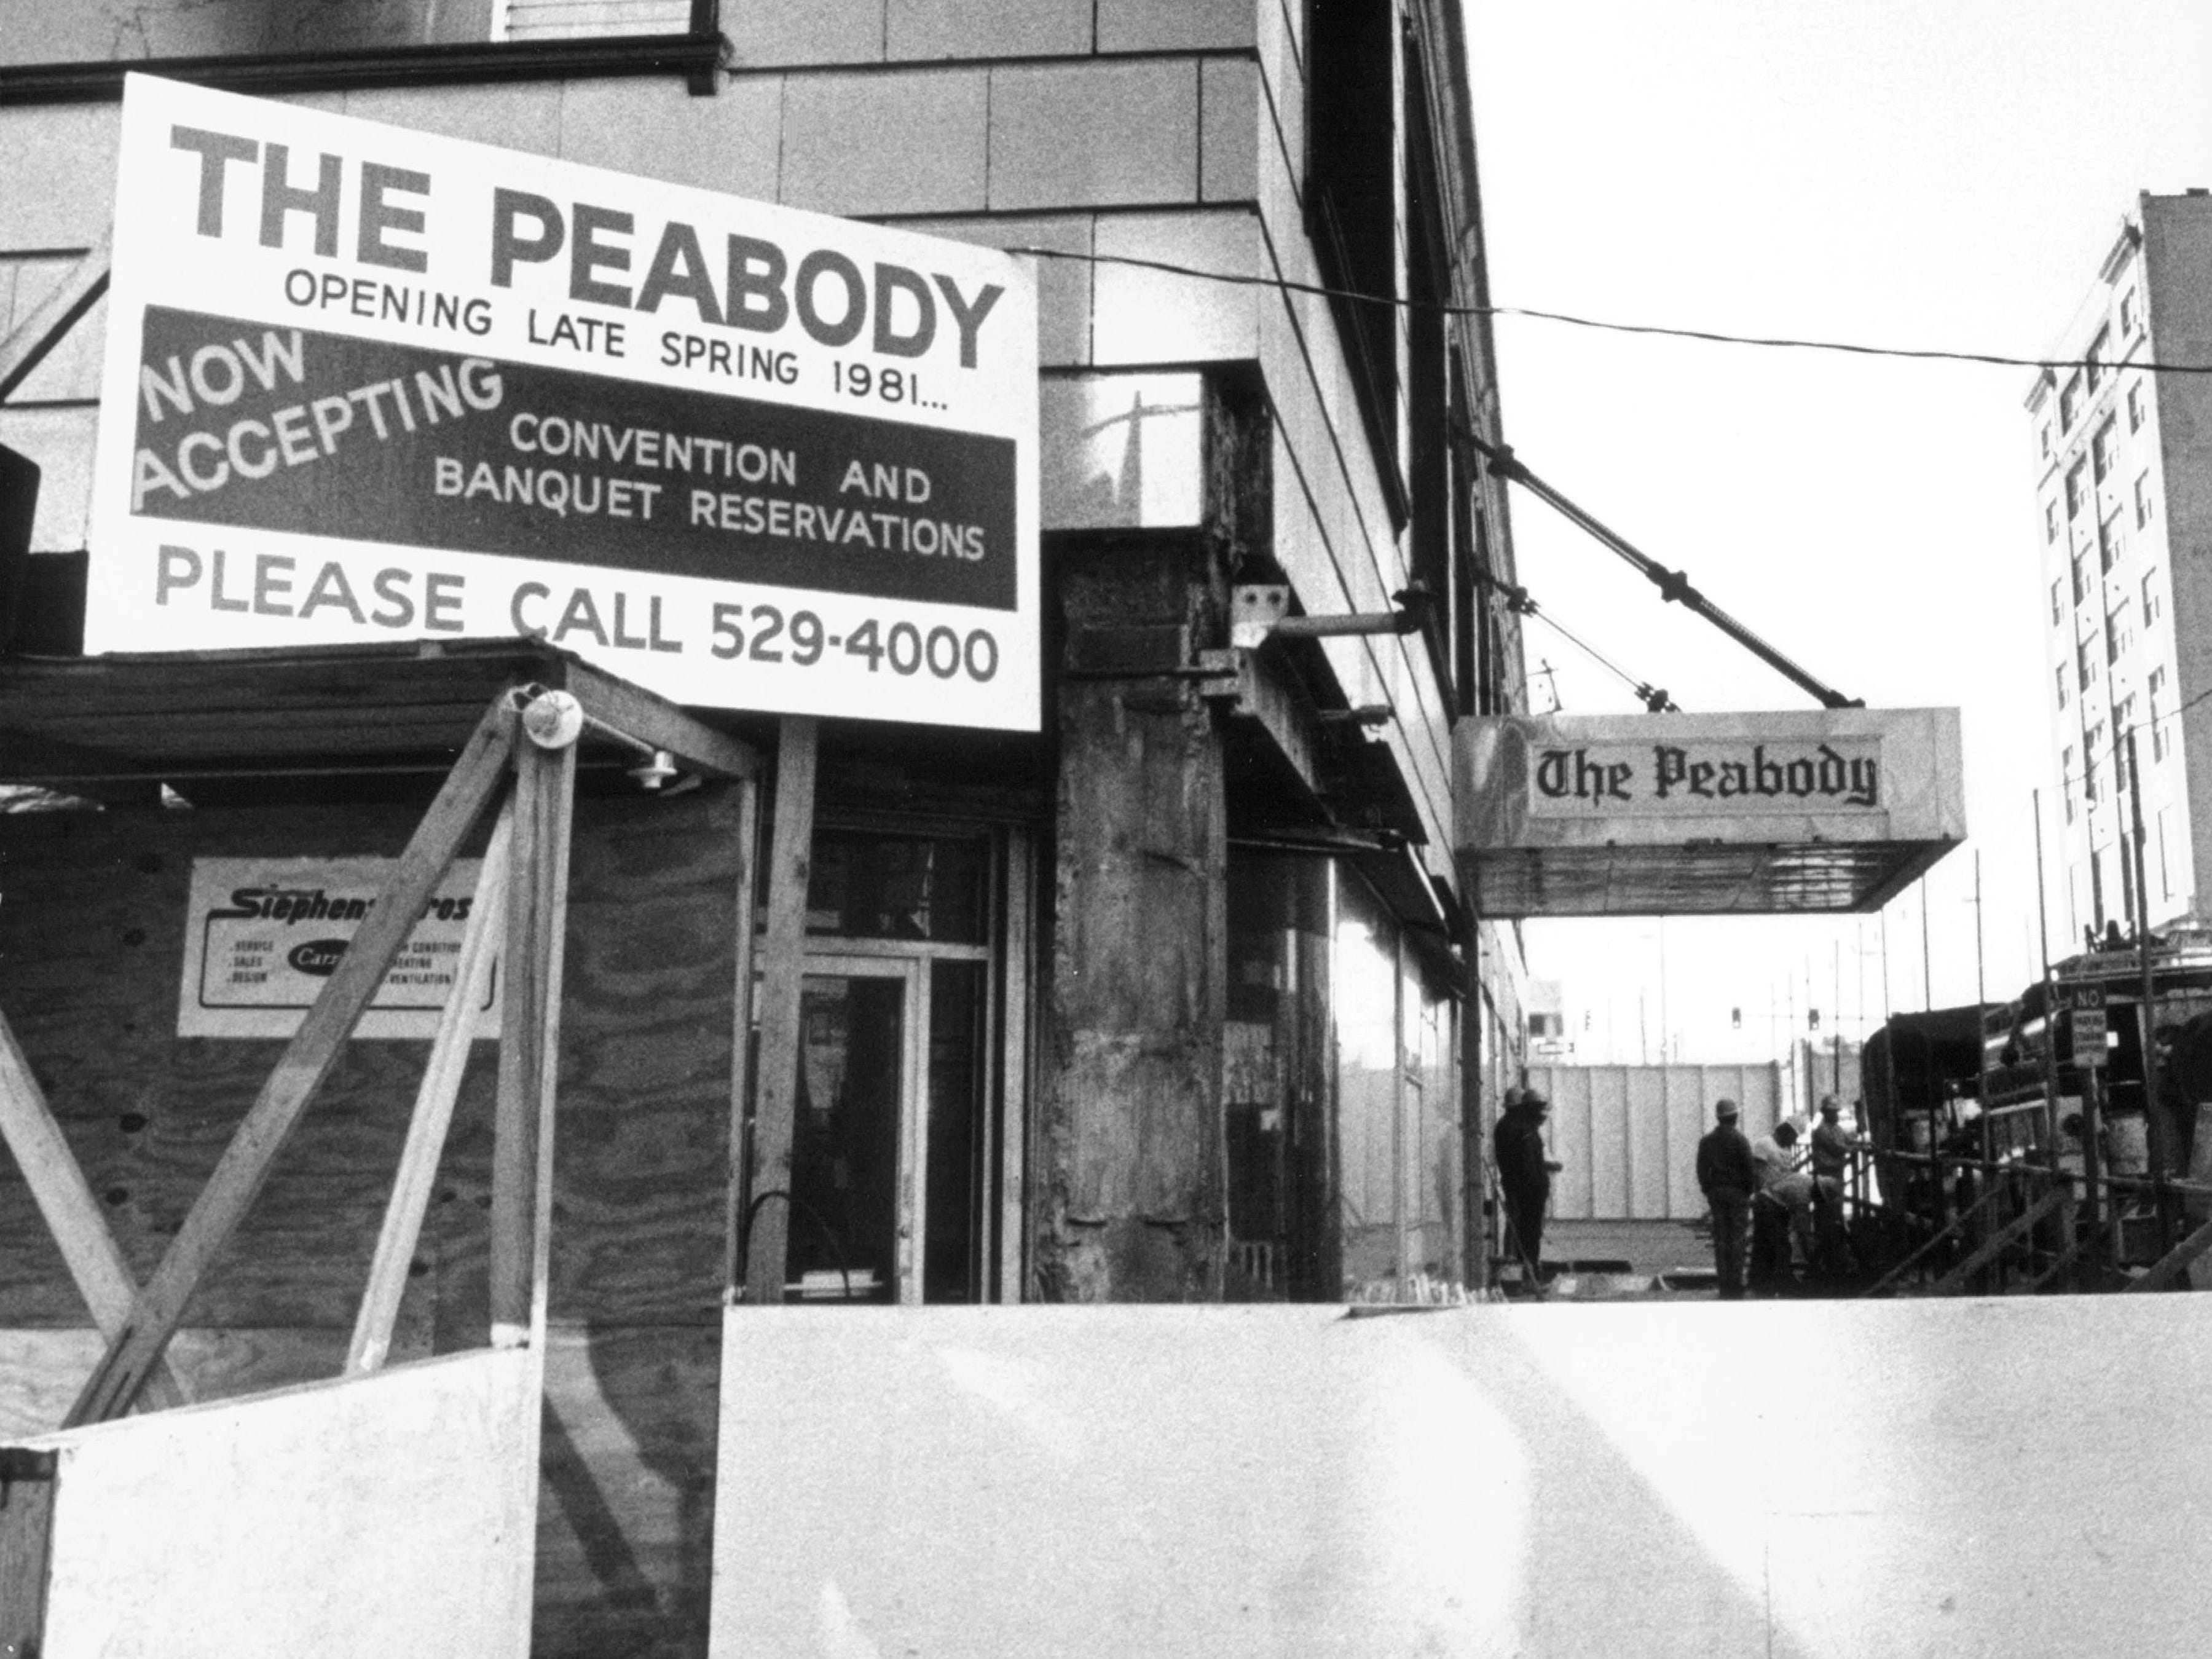 The Peabody Hotel, here Nov. 10, 1980, announces that it would be open for future business in the late spring of 1981.